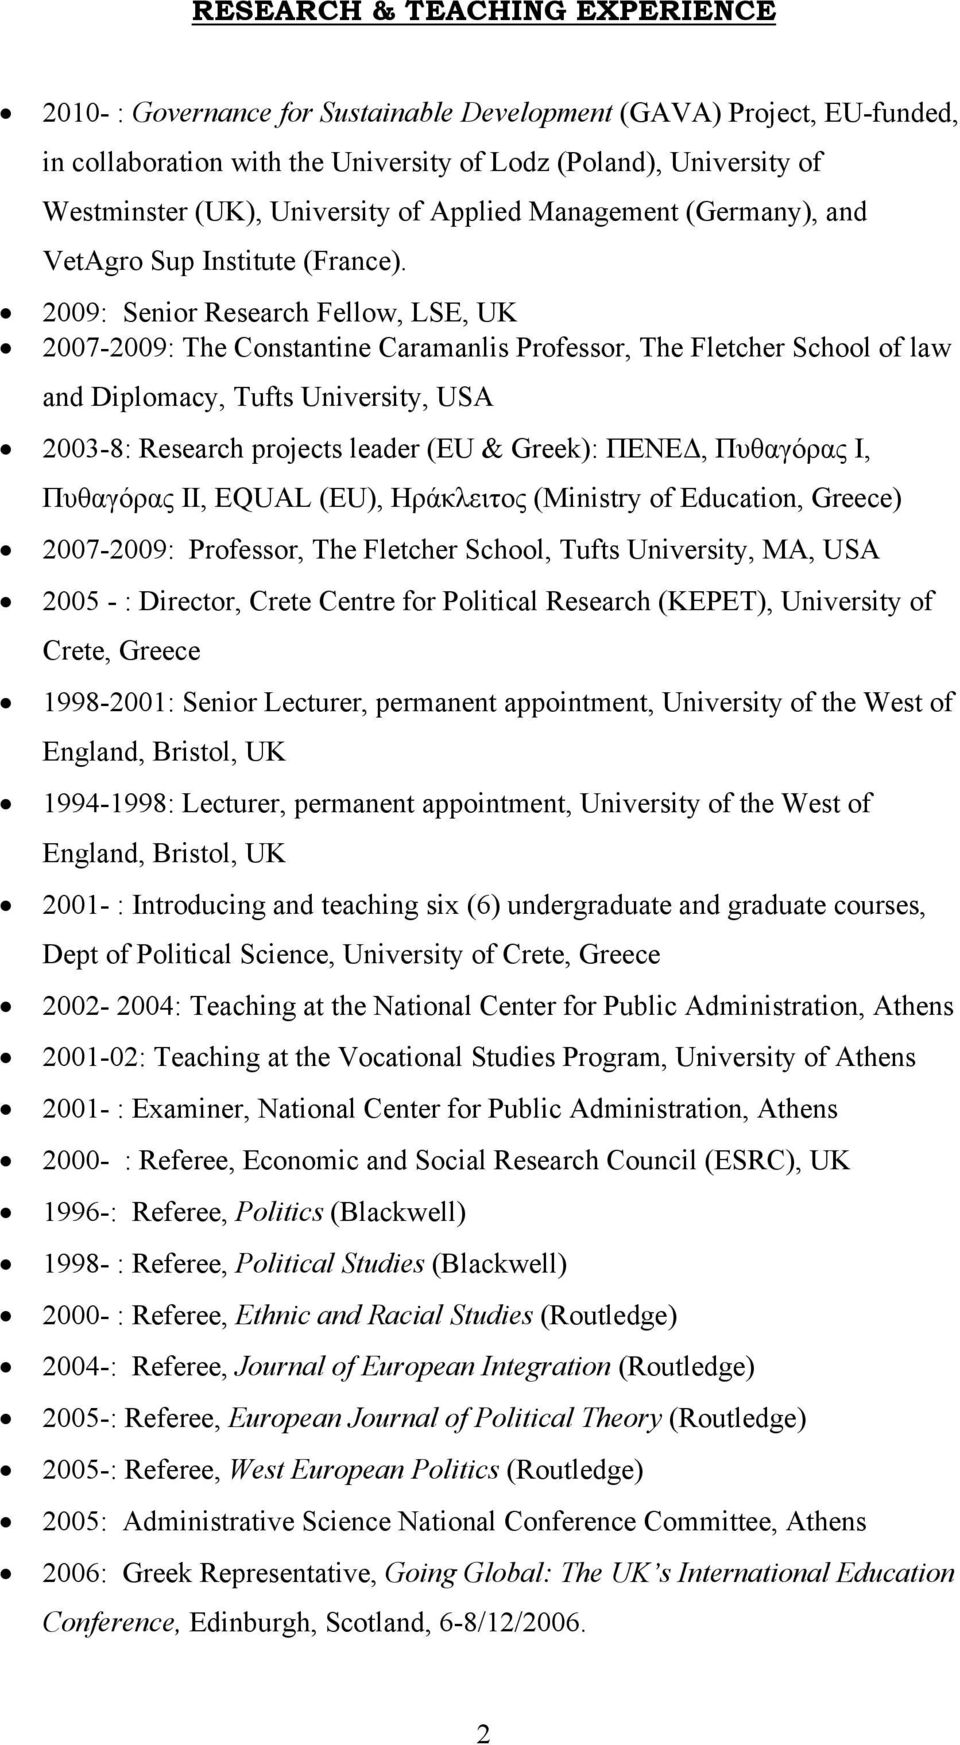 2009: Senior Research Fellow, LSE, UK 2007-2009: The Constantine Caramanlis Professor, The Fletcher School of law and Diplomacy, Tufts University, USA 2003-8: Research projects leader (EU & Greek):